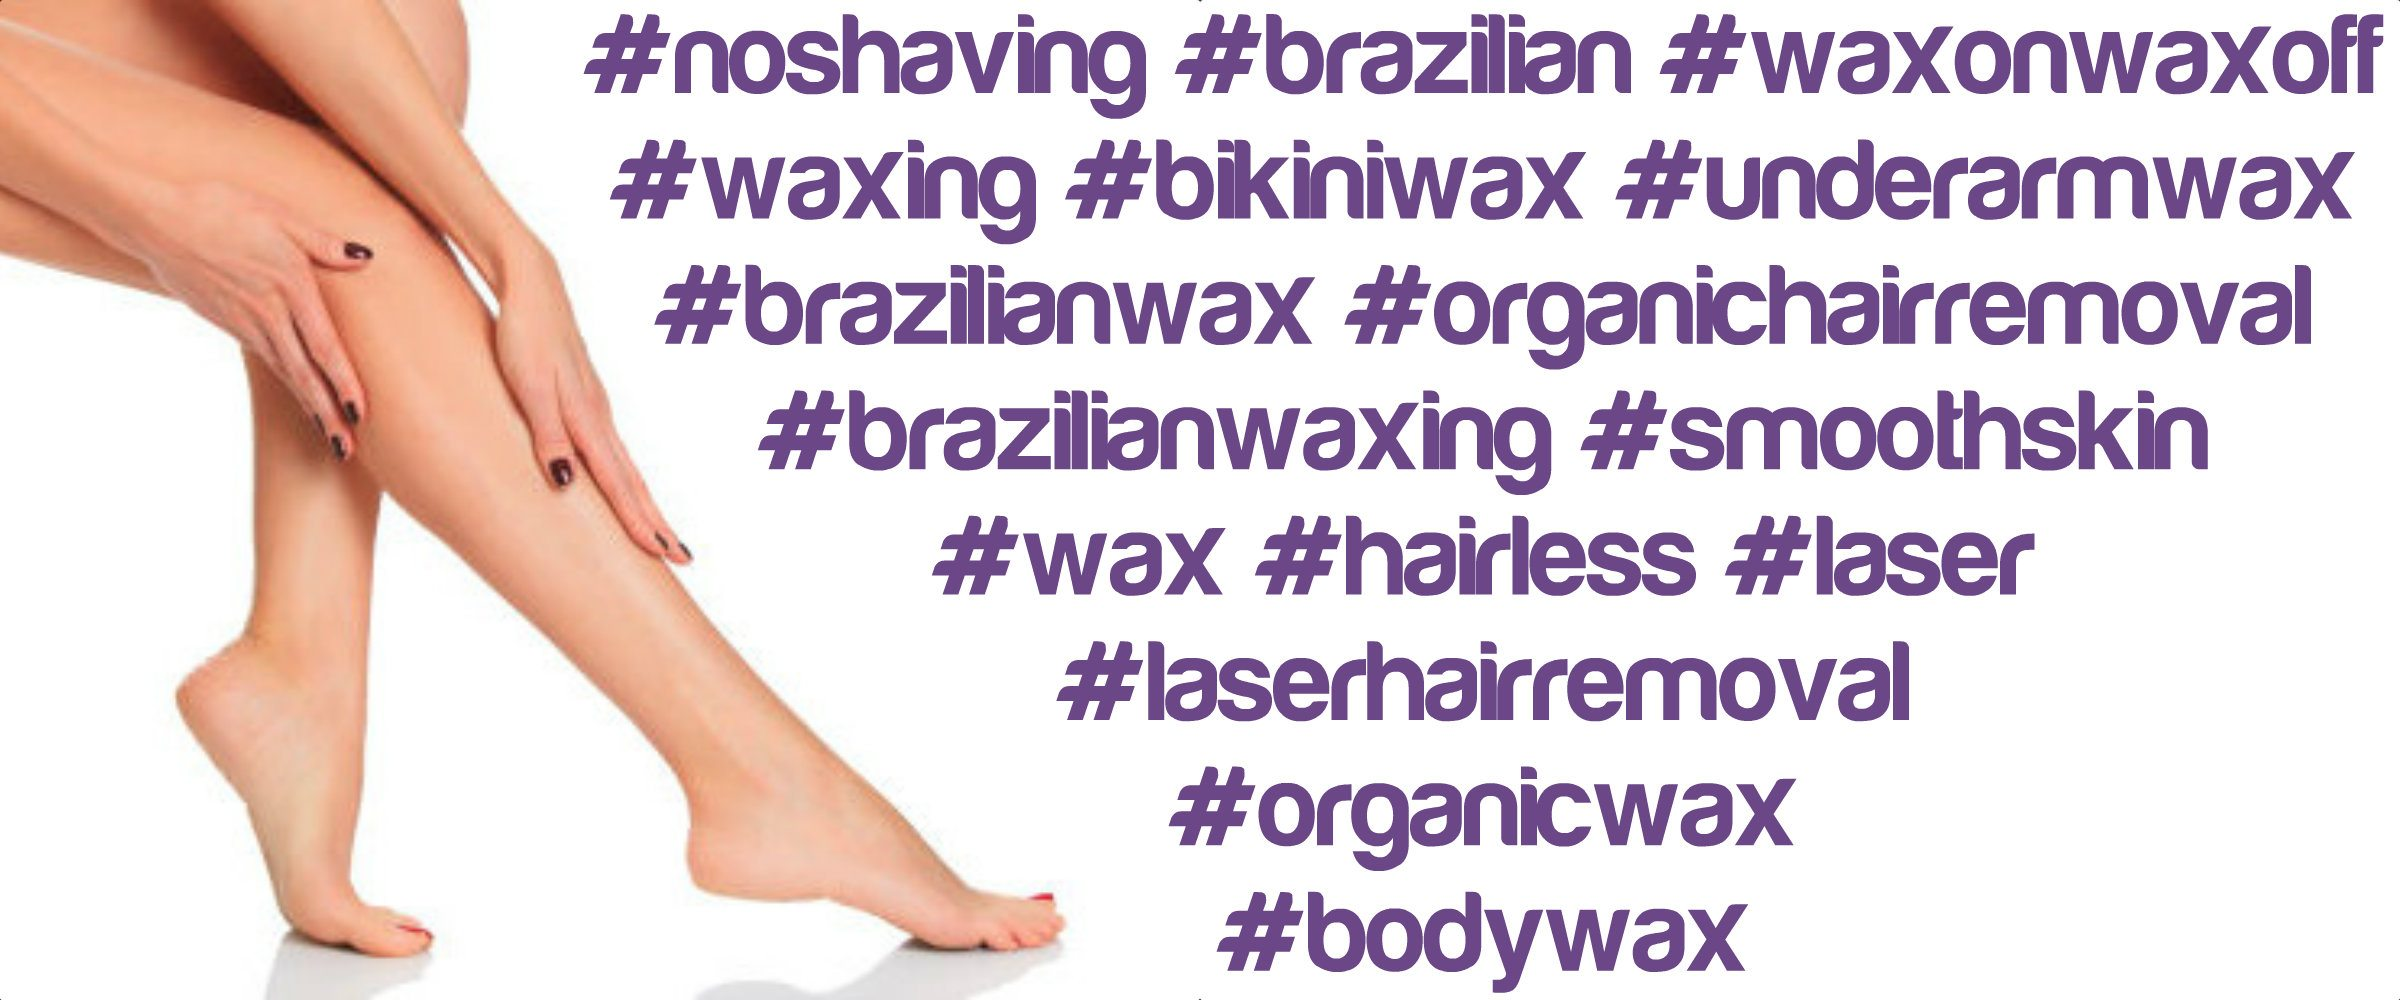 Hair-Removal-Salon-Hashtag